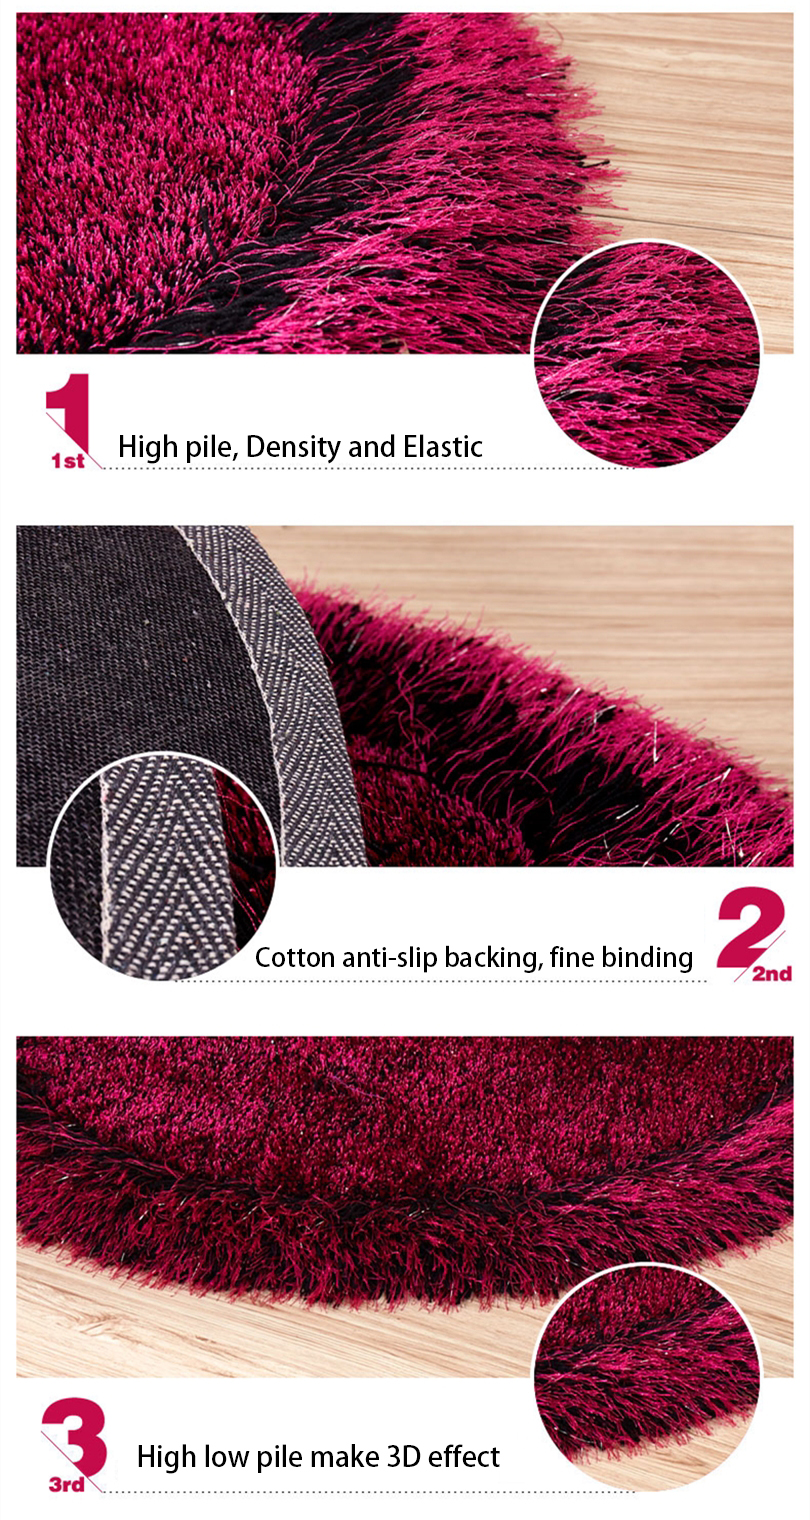 Polyester rose black elliptical heavy duty shaggy carpet